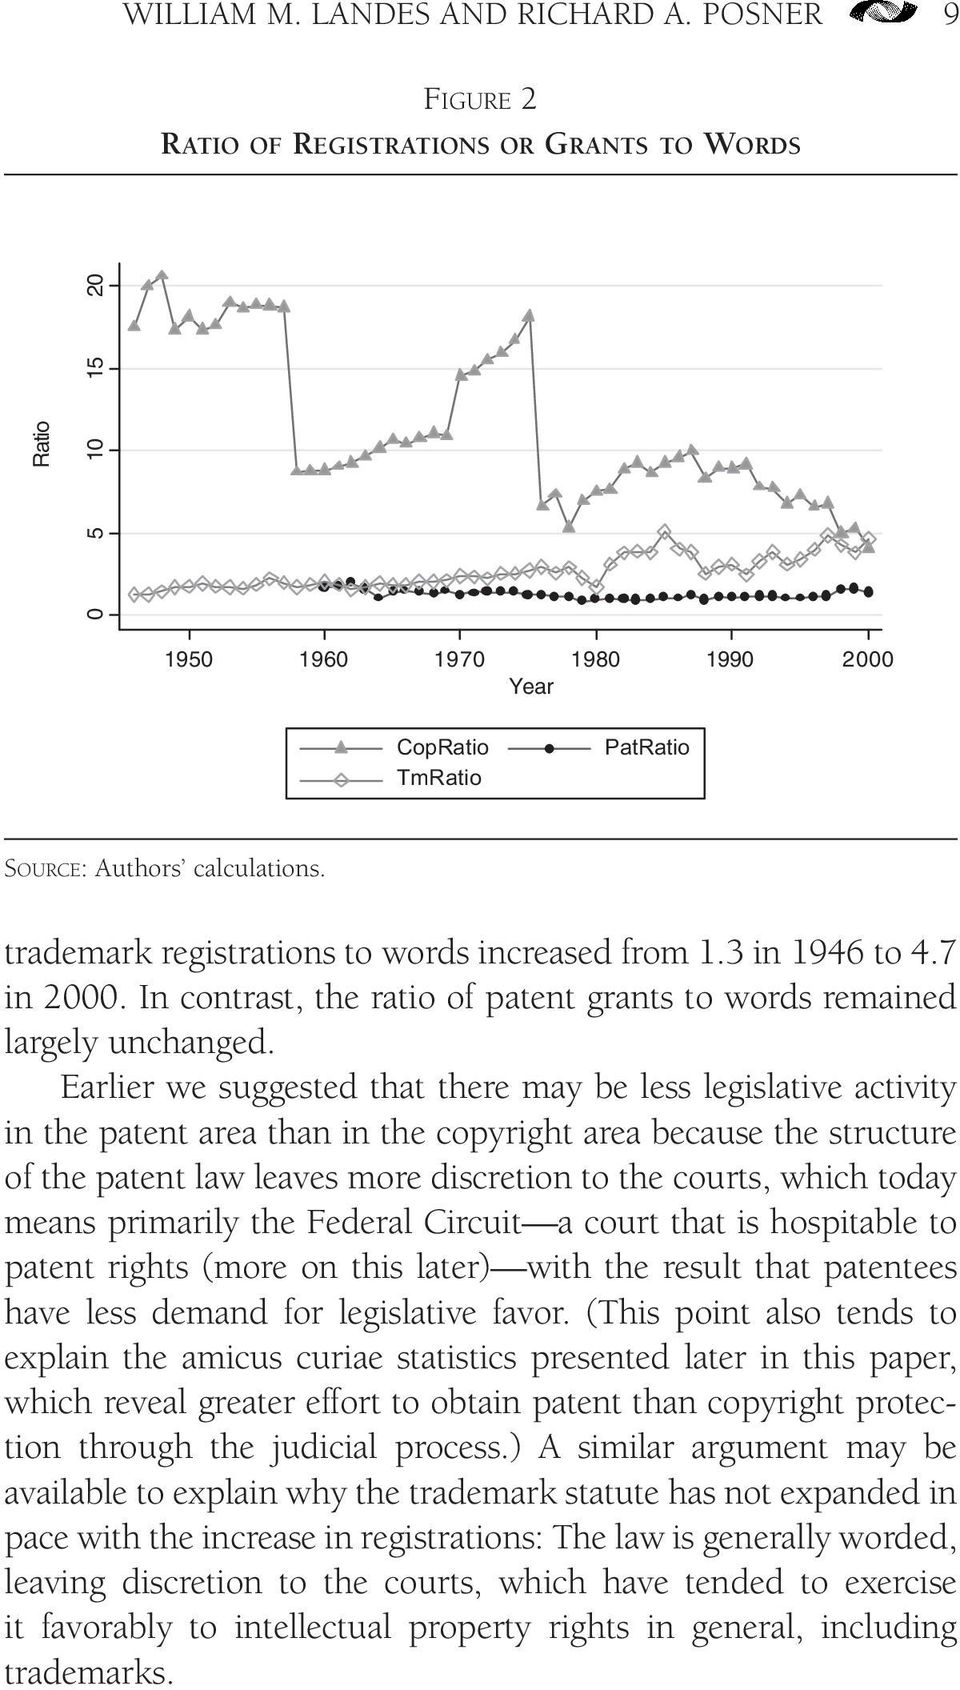 trademark registrations to words increased from 1.3 in 1946 to 4.7 in 2000. In contrast, the ratio of patent grants to words remained largely unchanged.